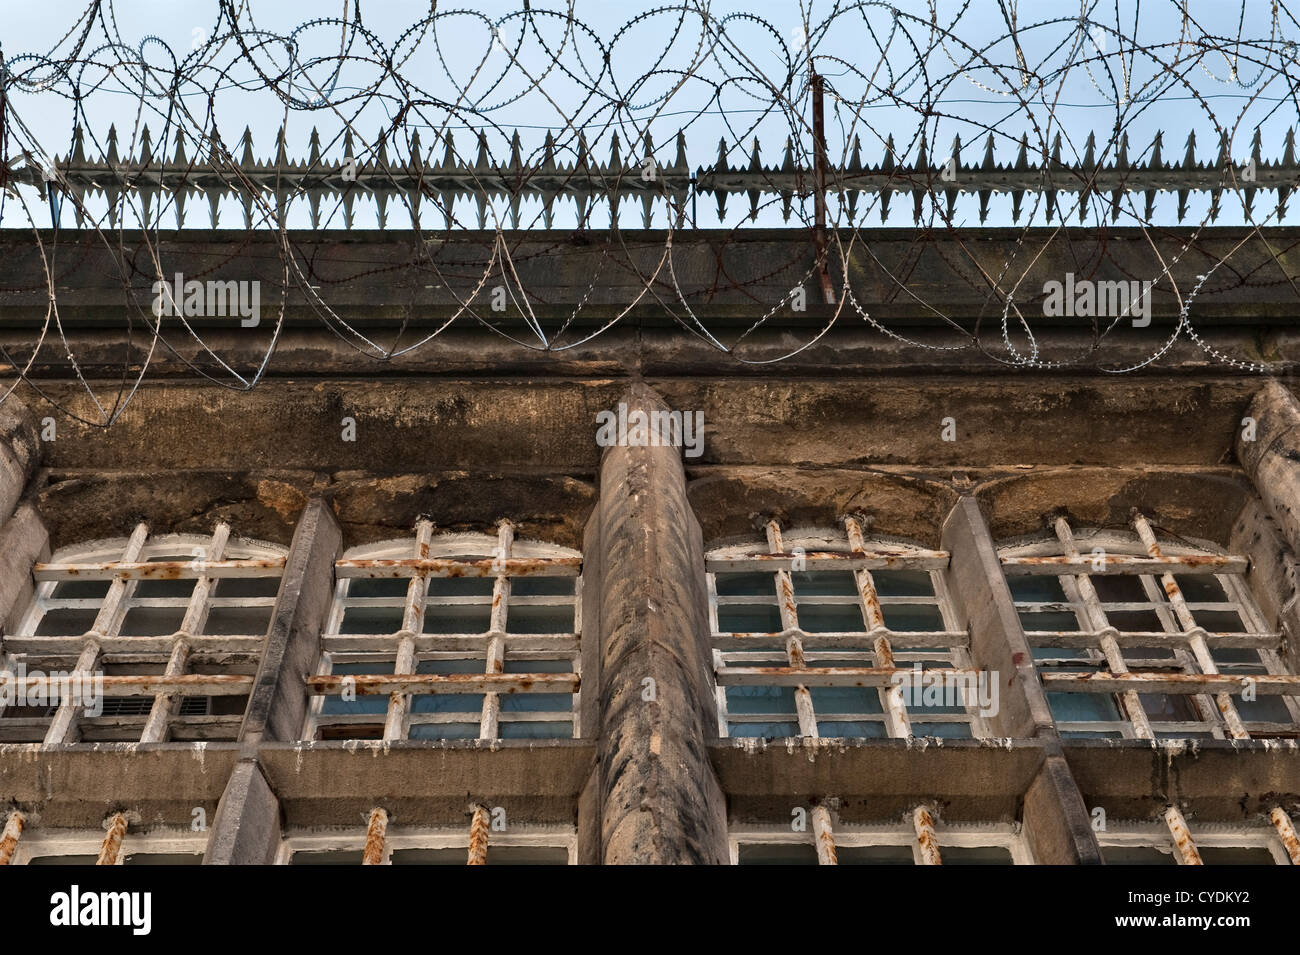 Bars and wire guard cells in a recently abandoned prison in the UK - Stock Image